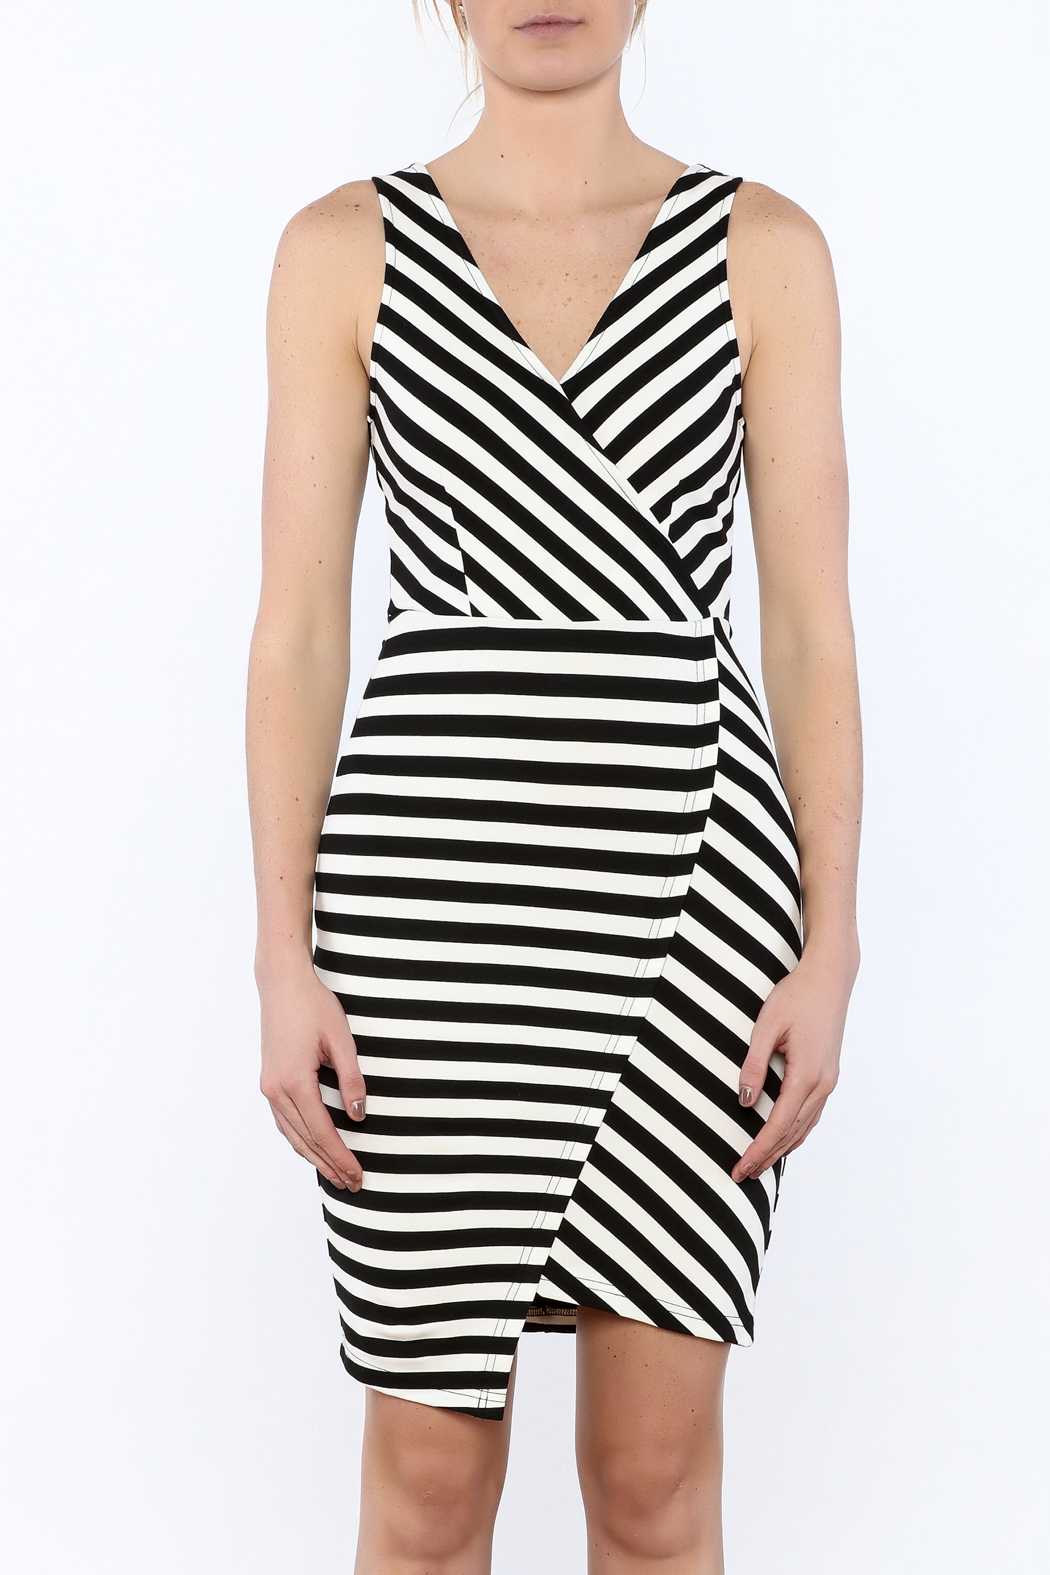 Cupcakes & Cashmere Sheldon Striped Dress - Side Cropped Image